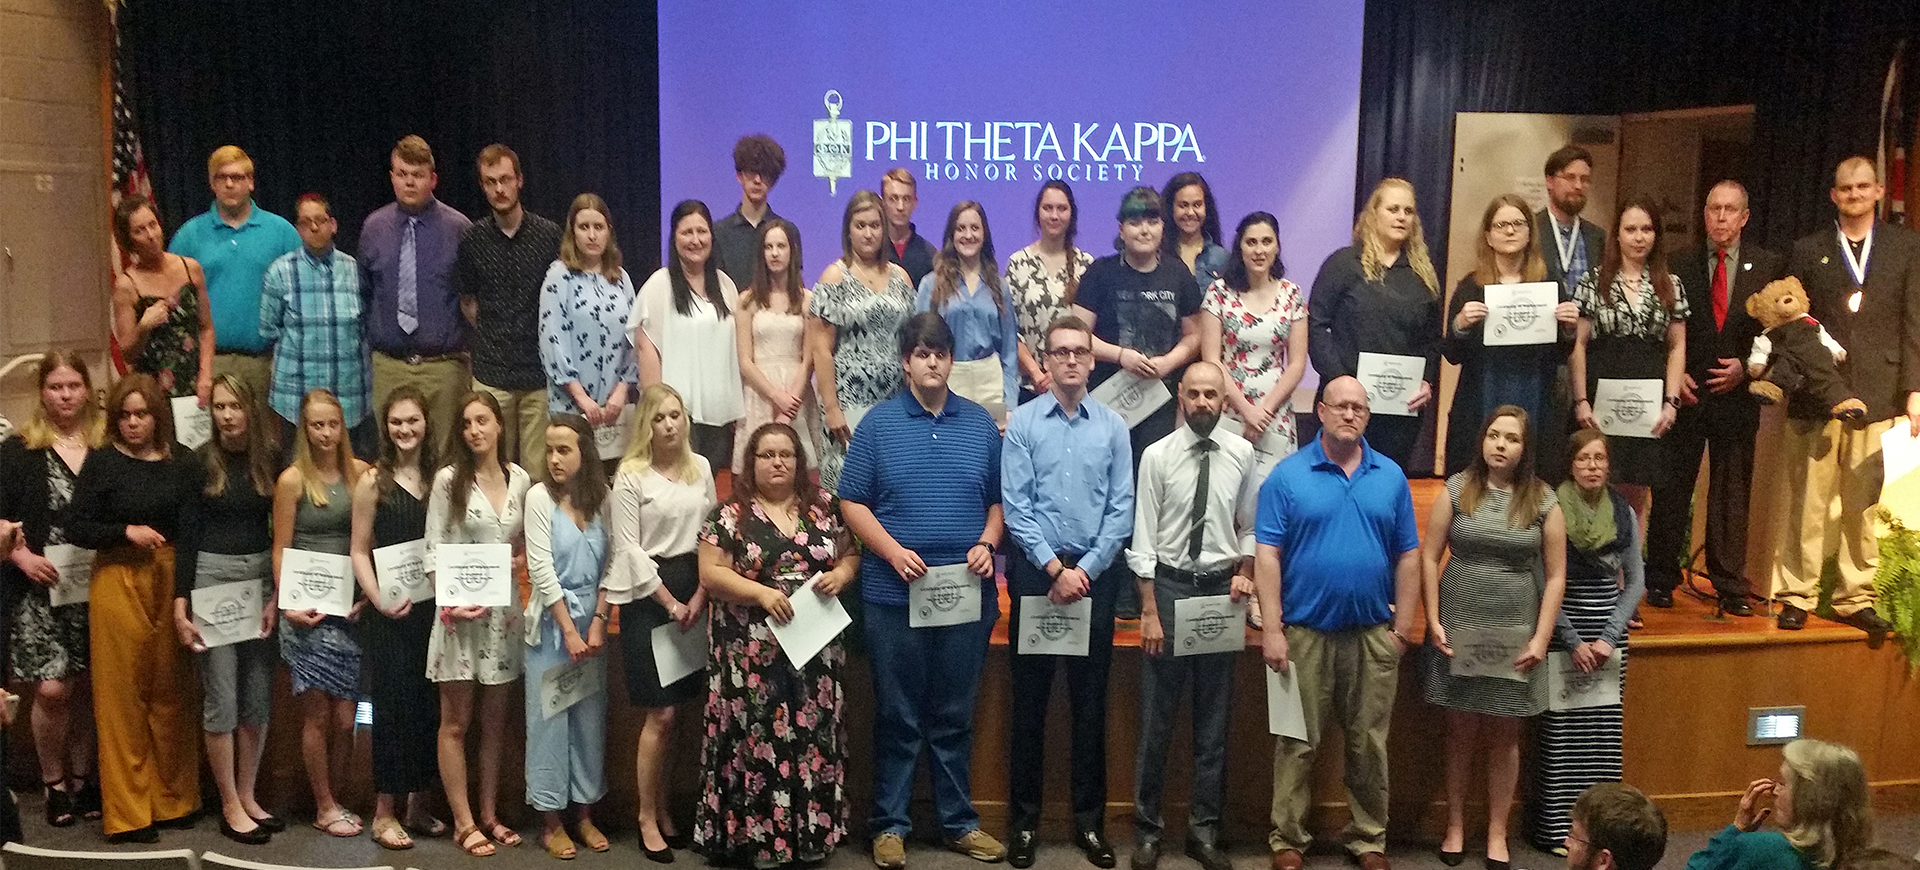 The Alpha Rho Gamma chapter of the national honor society of community colleges Phi Theta Kappa (PTK) at Washington State Community College (WSCC) recently held an induction ceremony